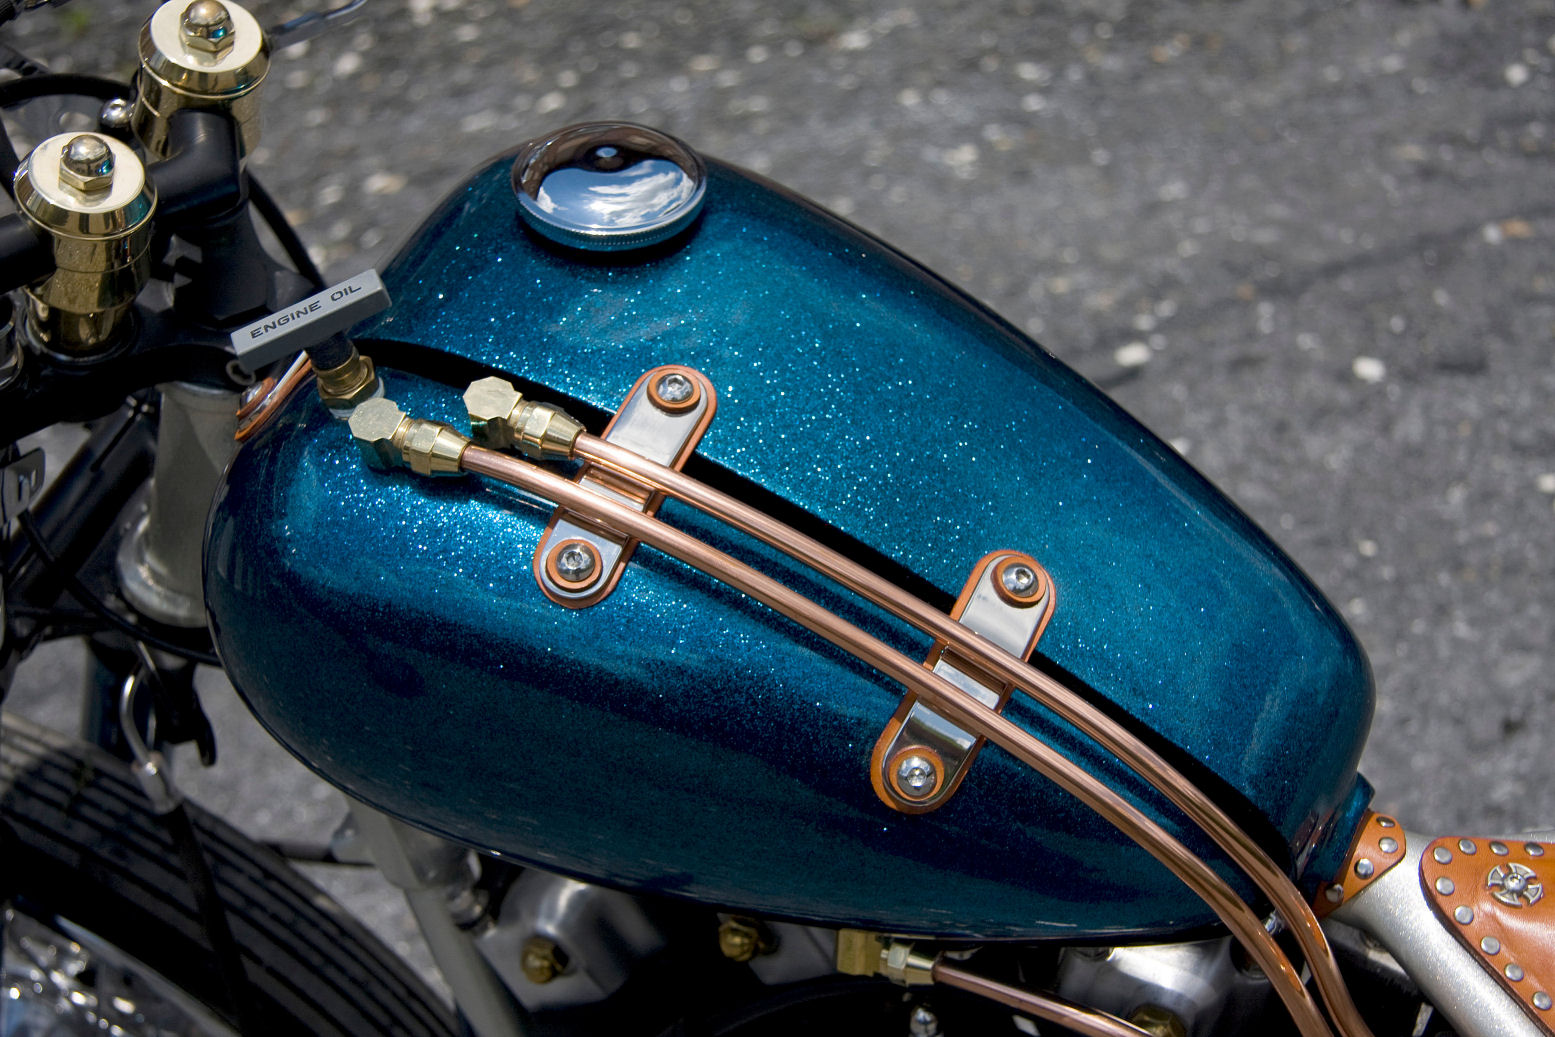 The Chop-In Block: A look at DeVille Cycles